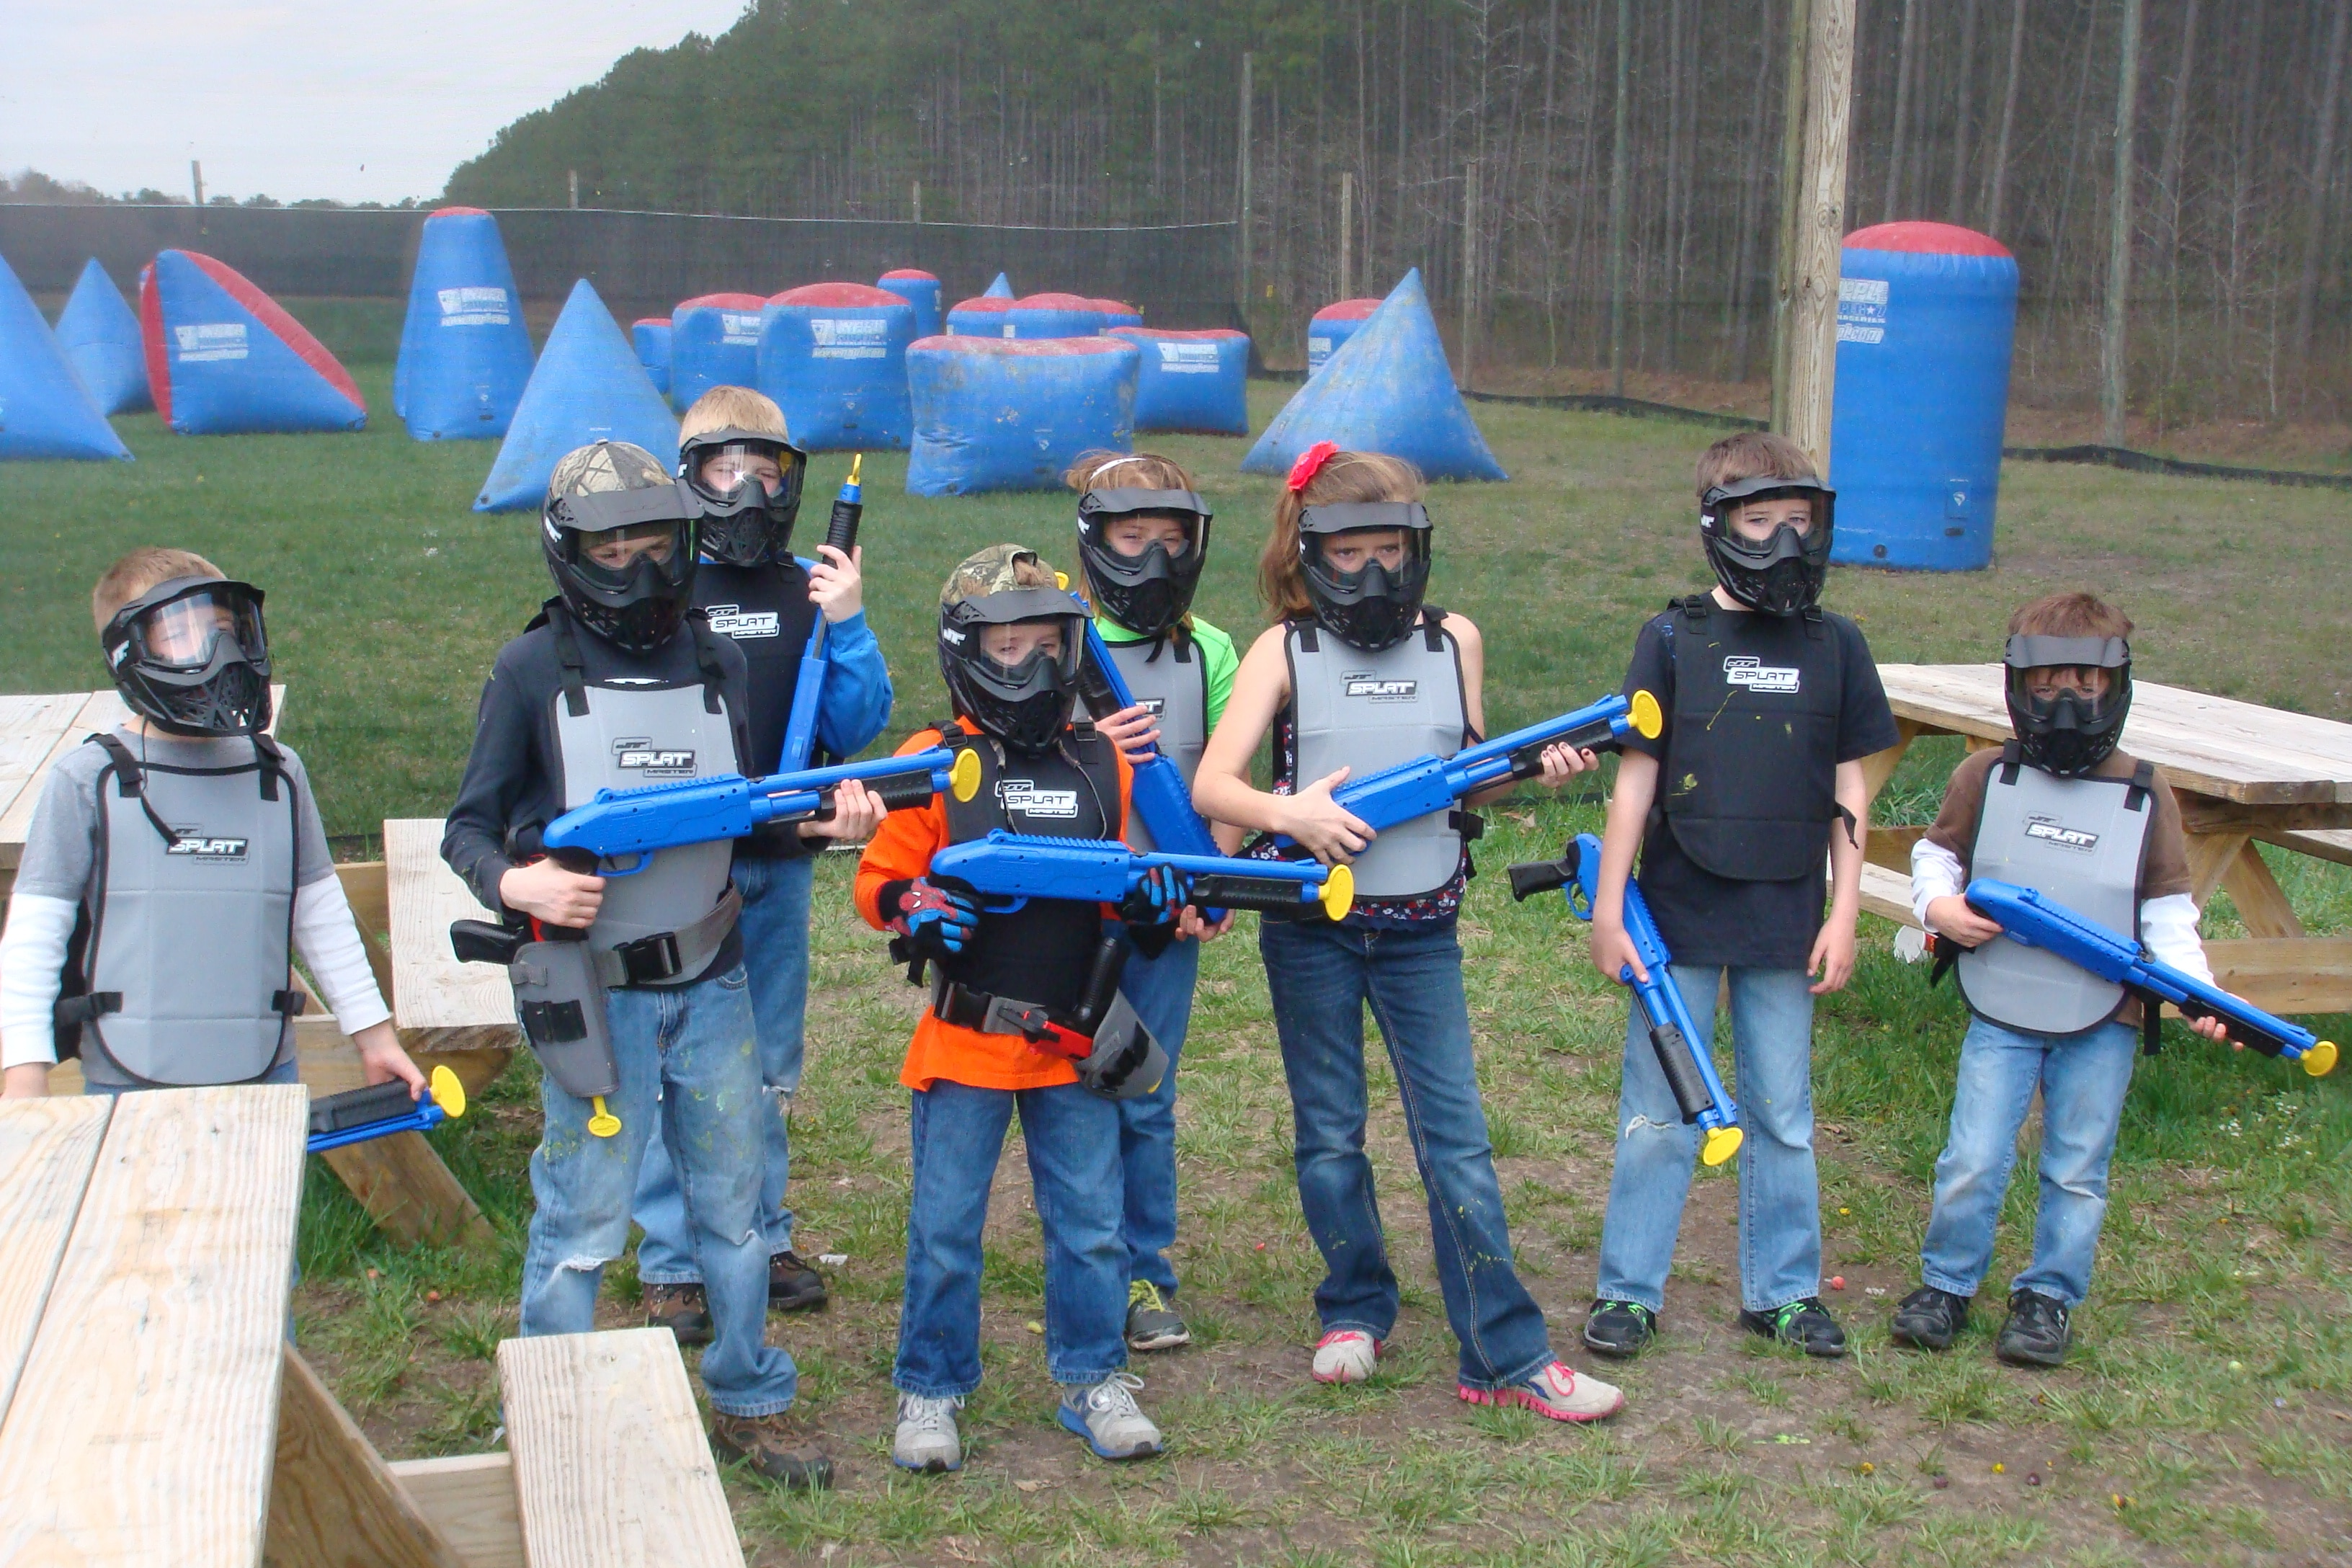 Splatmaster Low Velocity Paintball powered by Bedlam Paintball